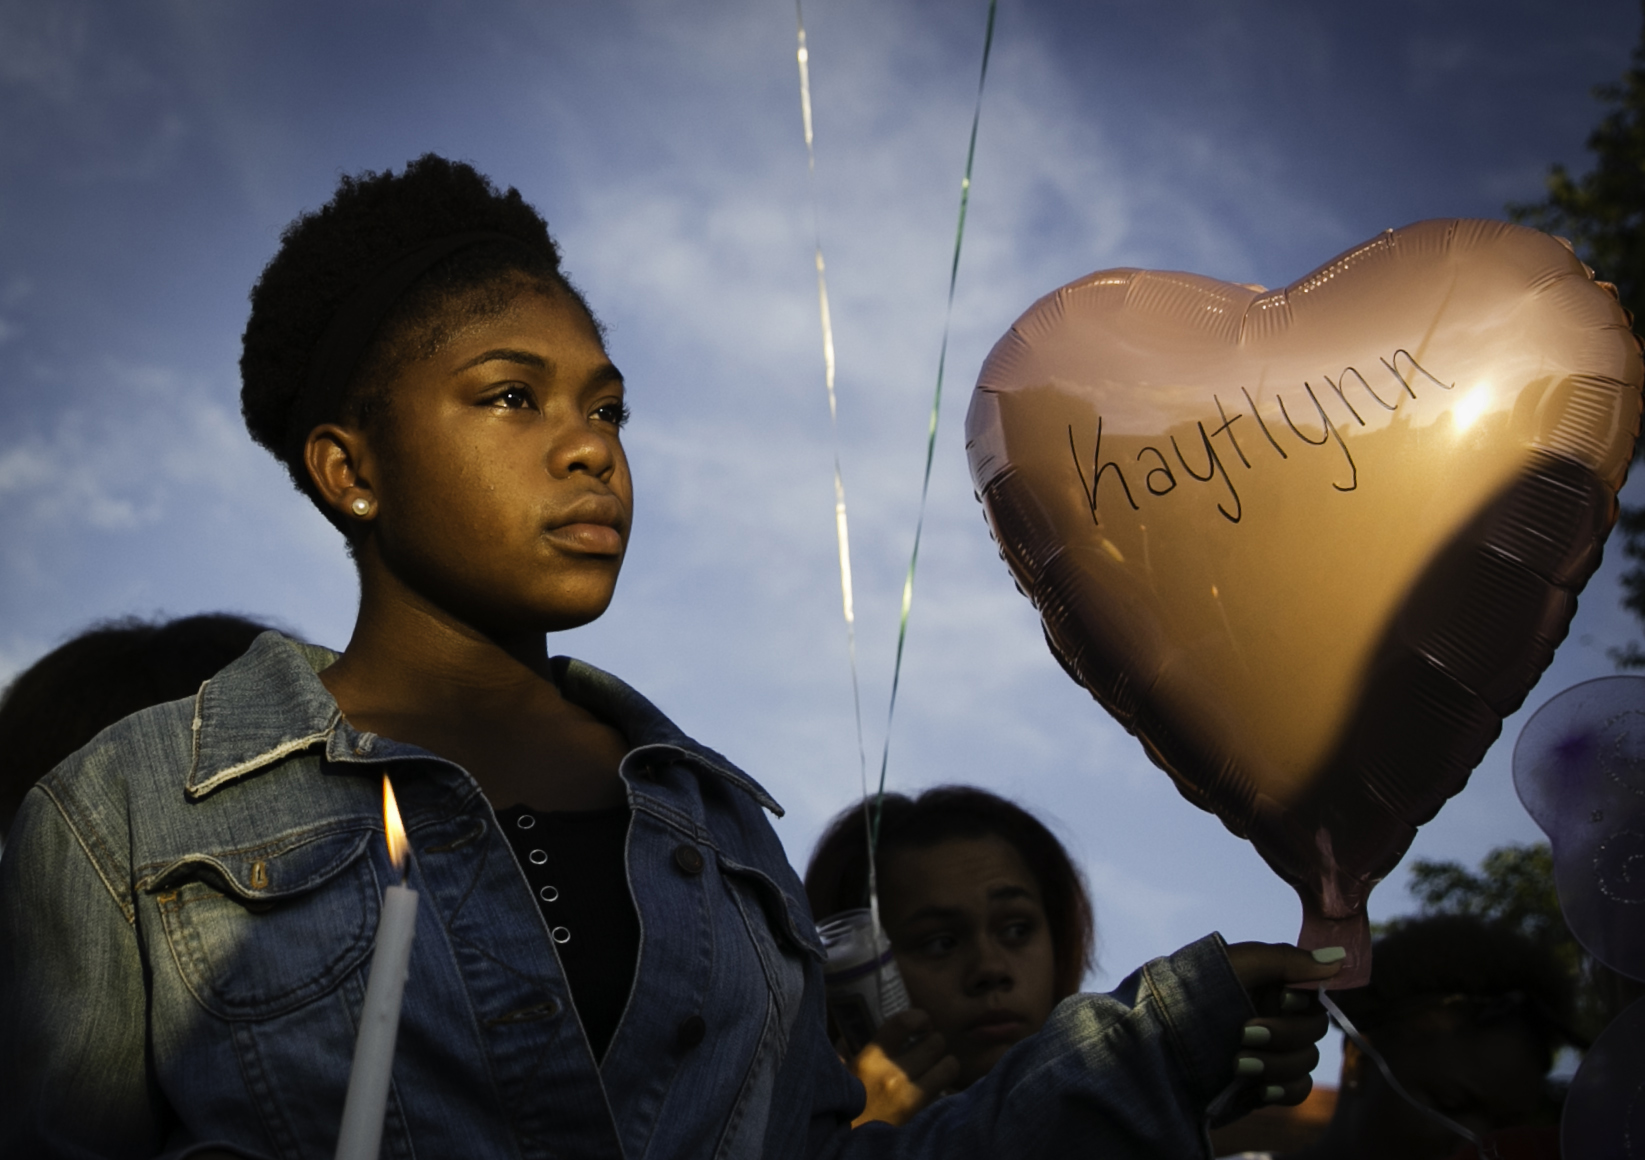 Traccarria Camper, 13, holds a balloon and candle during a prayer vigil held in honor of Kaytlynn Cargill, 13, at Central Junior High School in Euless, Texas on June 22, 2017. Cargill's body was found on June 21, two days after she disappeared Monday evening while walking her dog. (Tailyr Irvine/The Dallas Morning News)